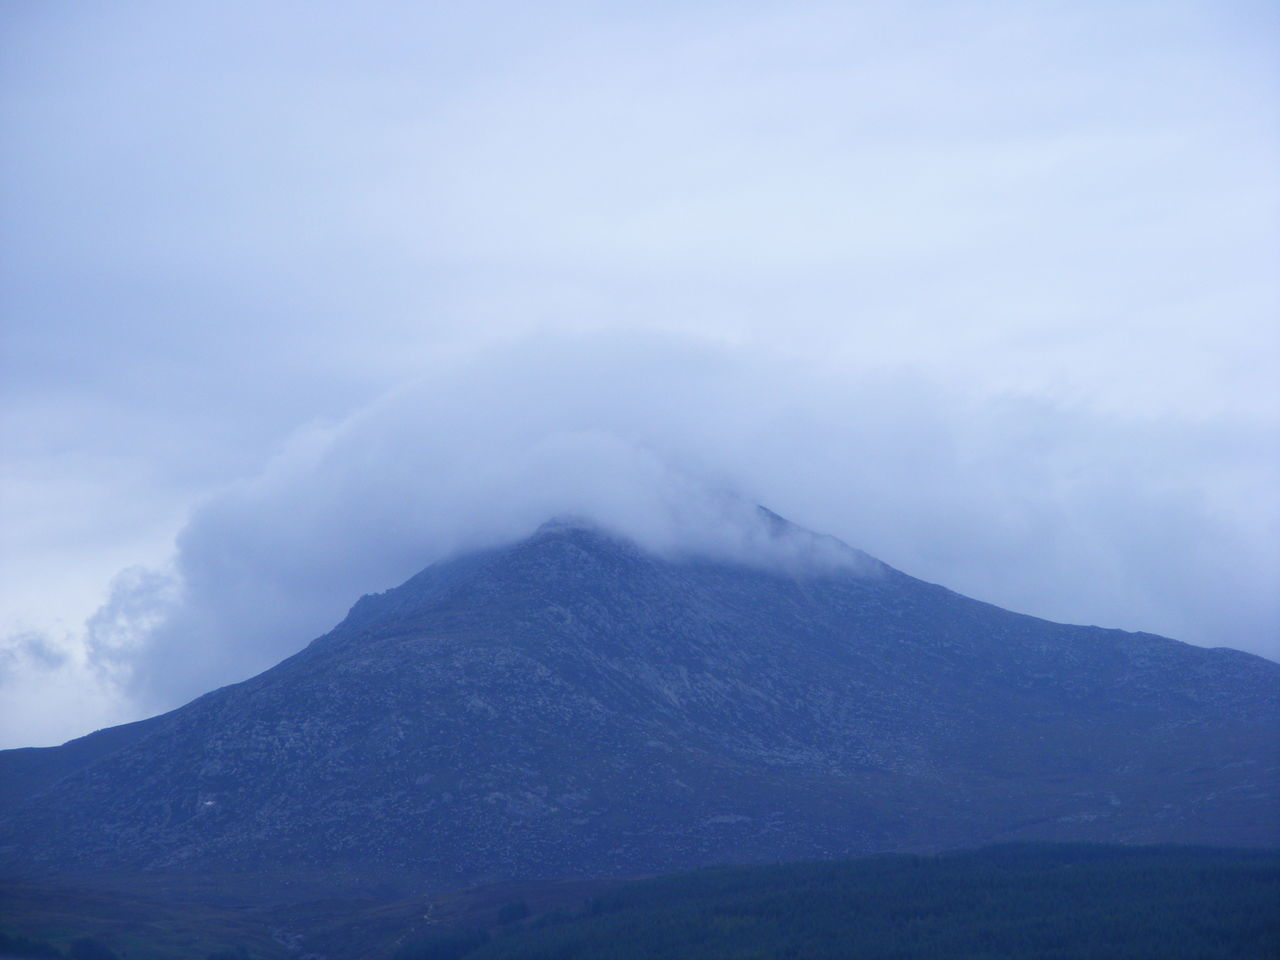 Arran  Beauty In Nature Clouds Clouds And Sky Hazy Mountains Isle Of Arran  Landscape Mist Misty Mountains  Mountain Mountain Landscape Mountain Peak Mountain Peaks Mountain View Mountains And Sky Mountains And Valleys Nature Nature Outdoors Scenics Scotland Sky Tranquil Scene Tranquility Weather